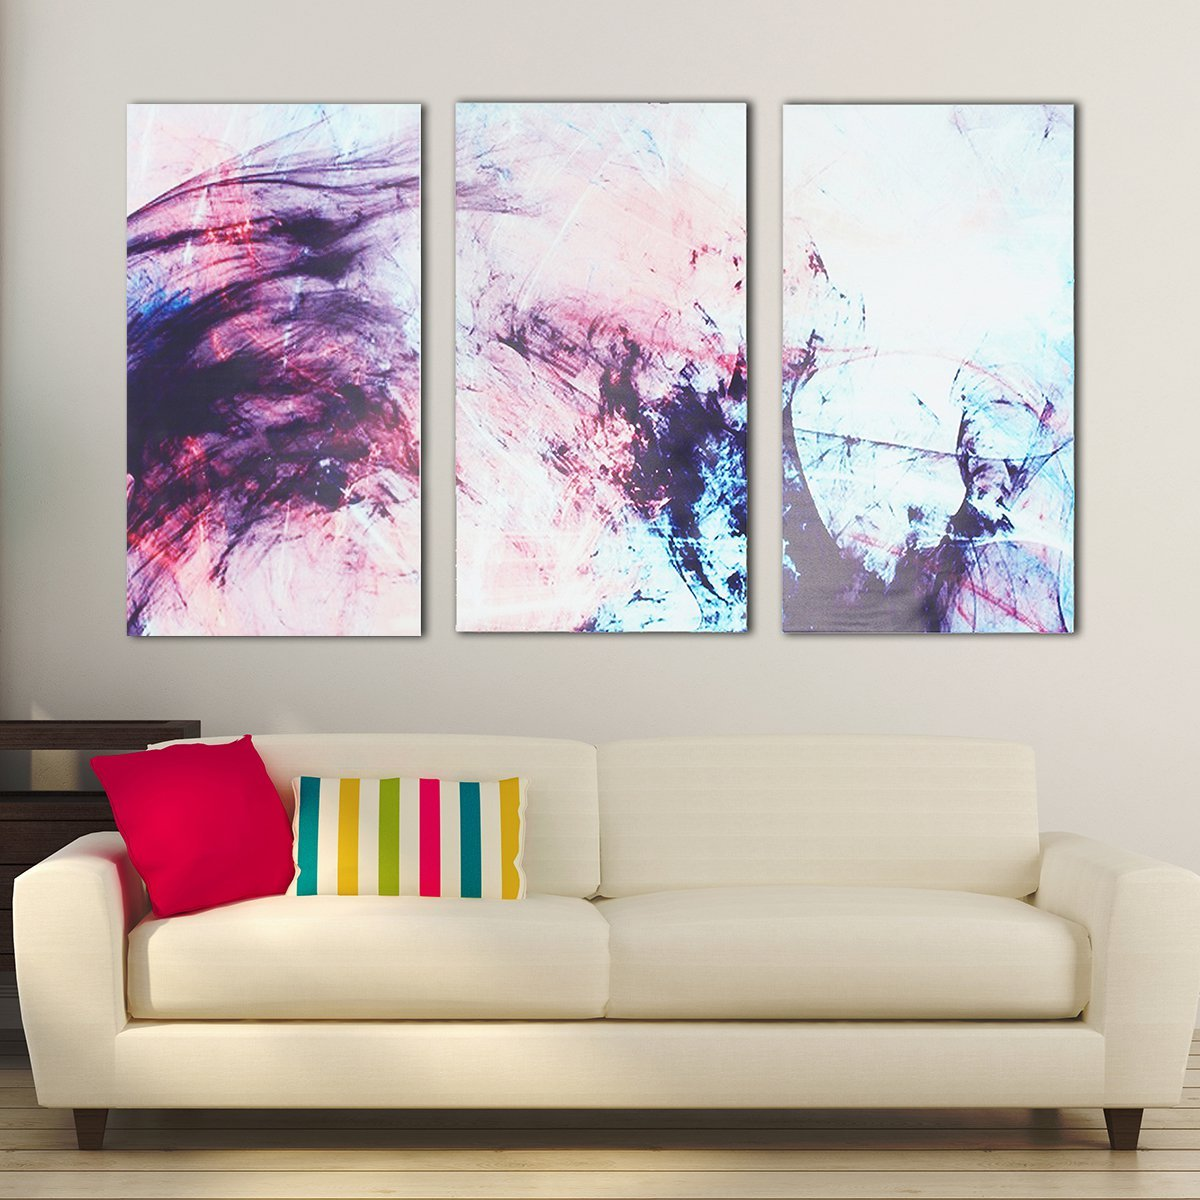 3pcs Abstract Stretched Canvas Prints Framed Wall Art Home Office Decor